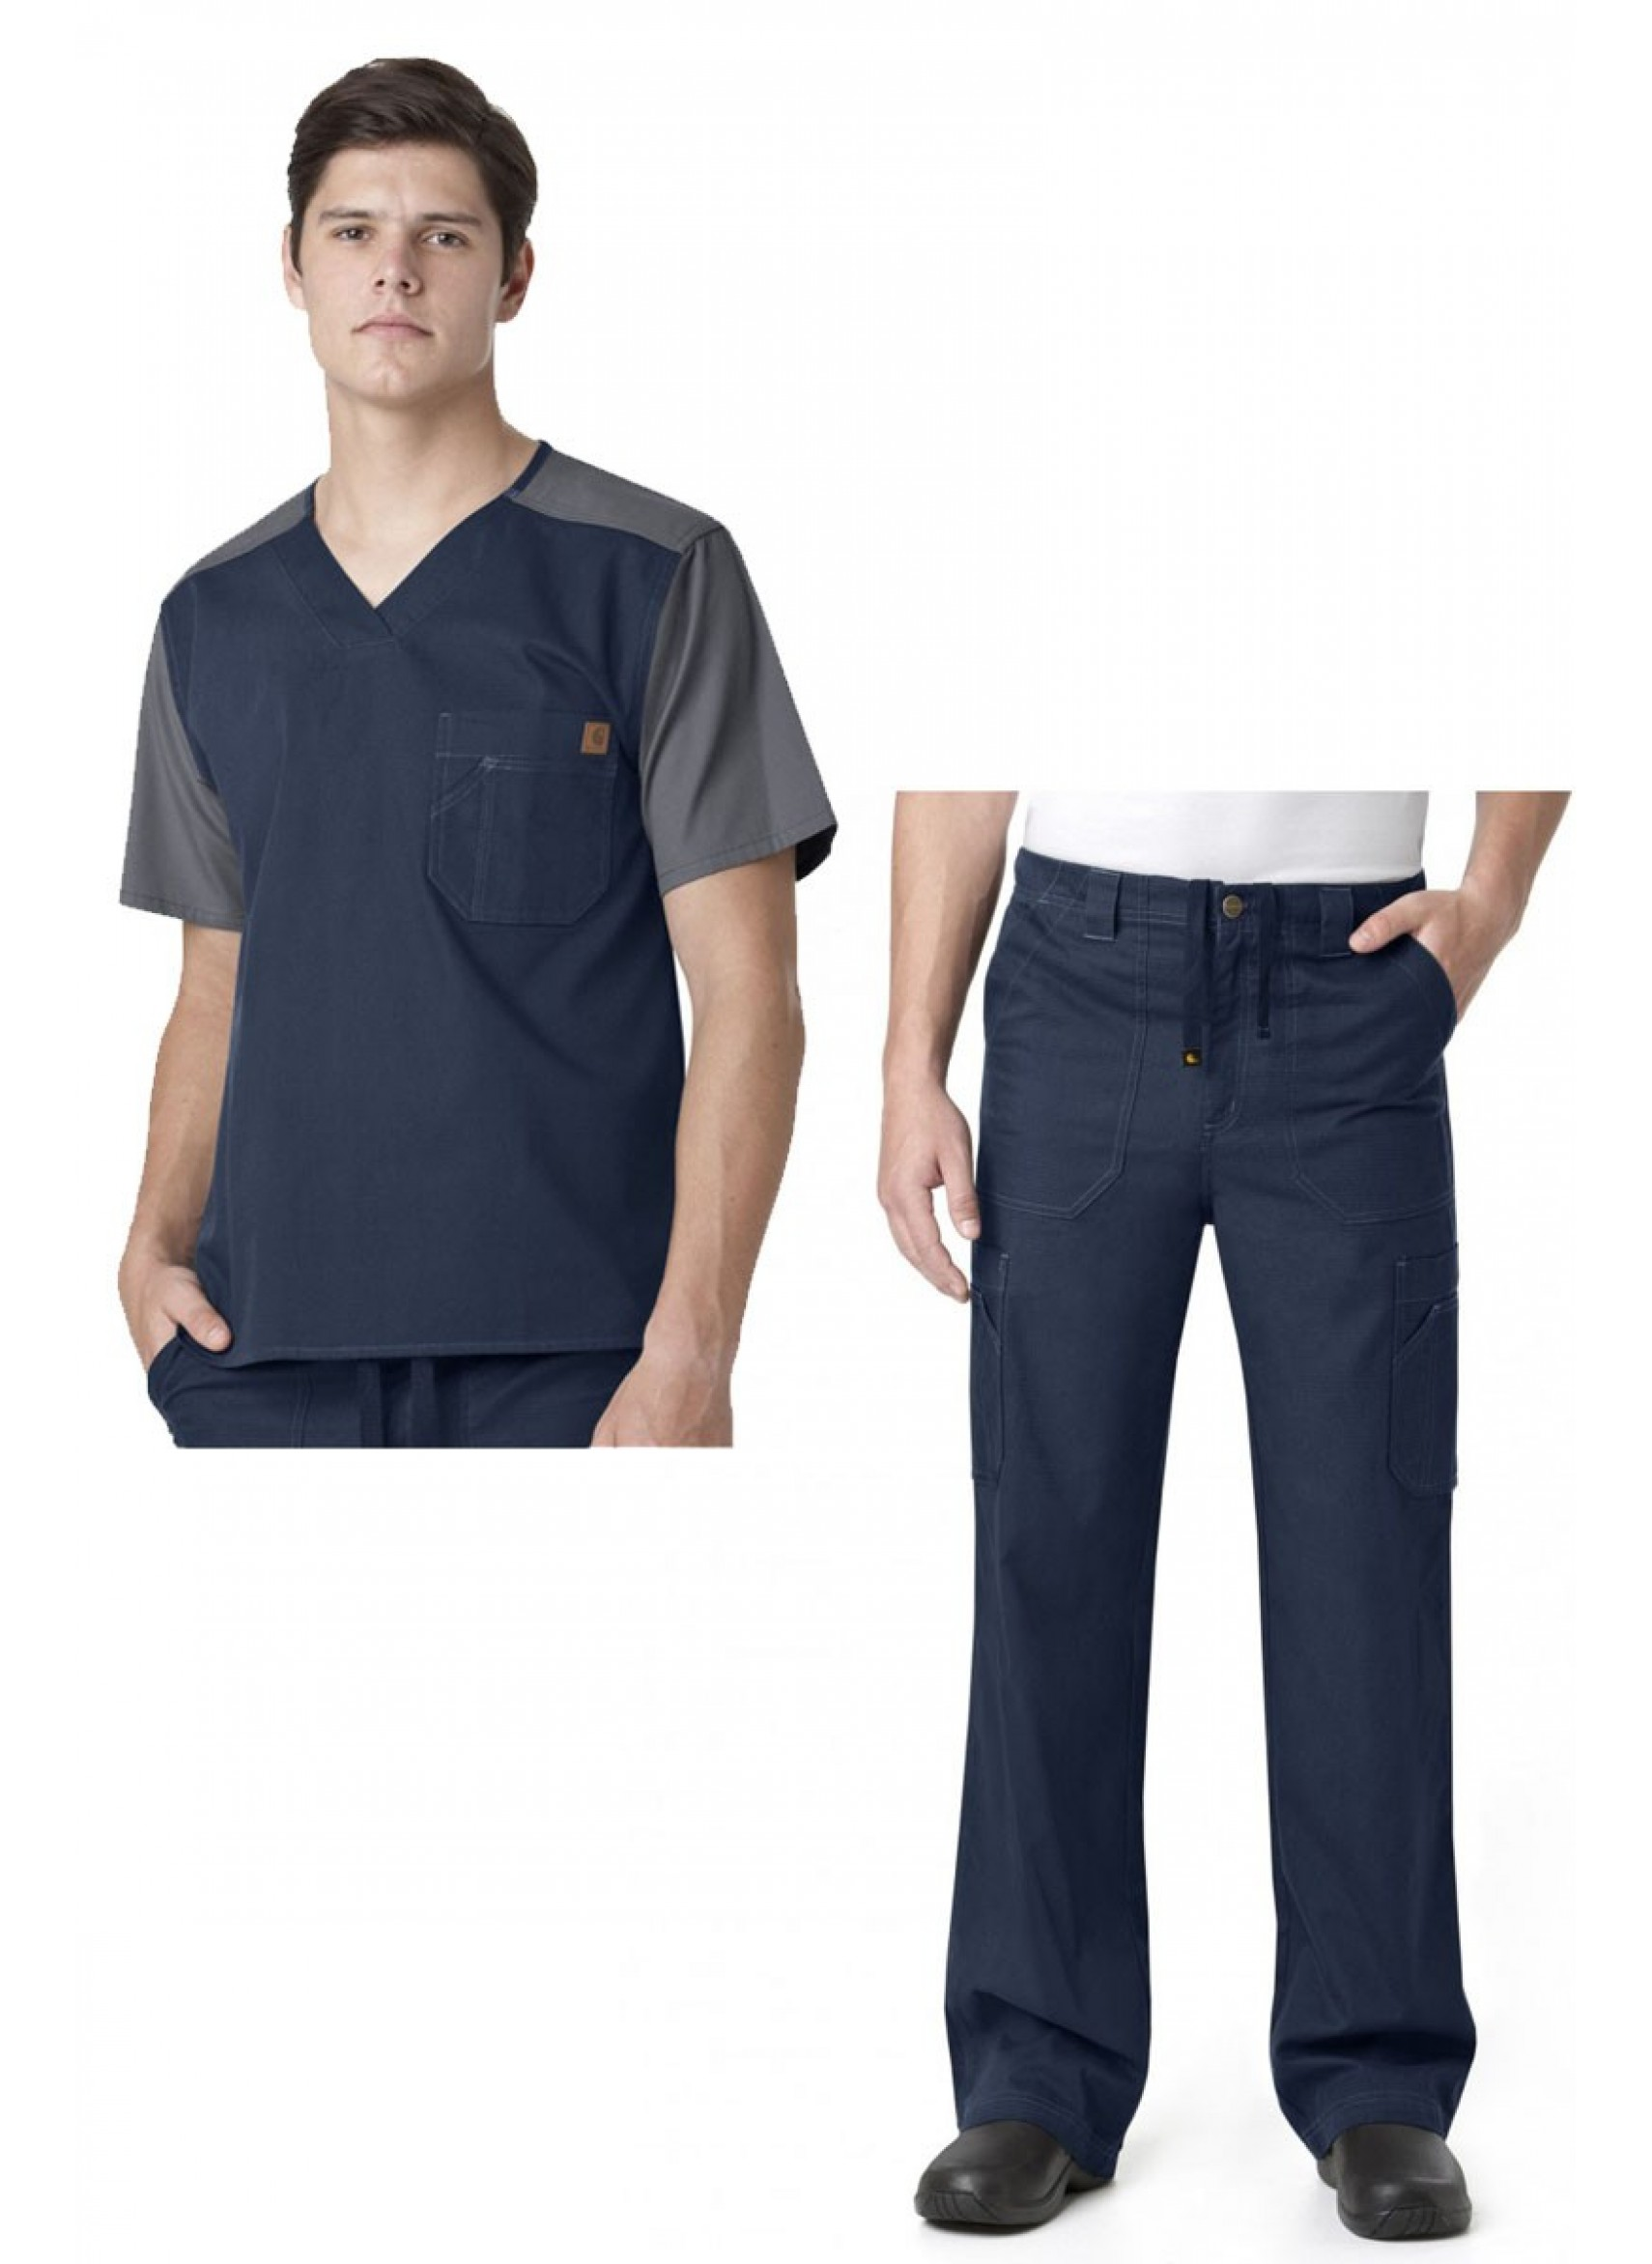 0ddf2f64599 20% off all Dickies Scrubs! Use code DICKIES20 at checkout! Carhartt Men's  Color Block ...